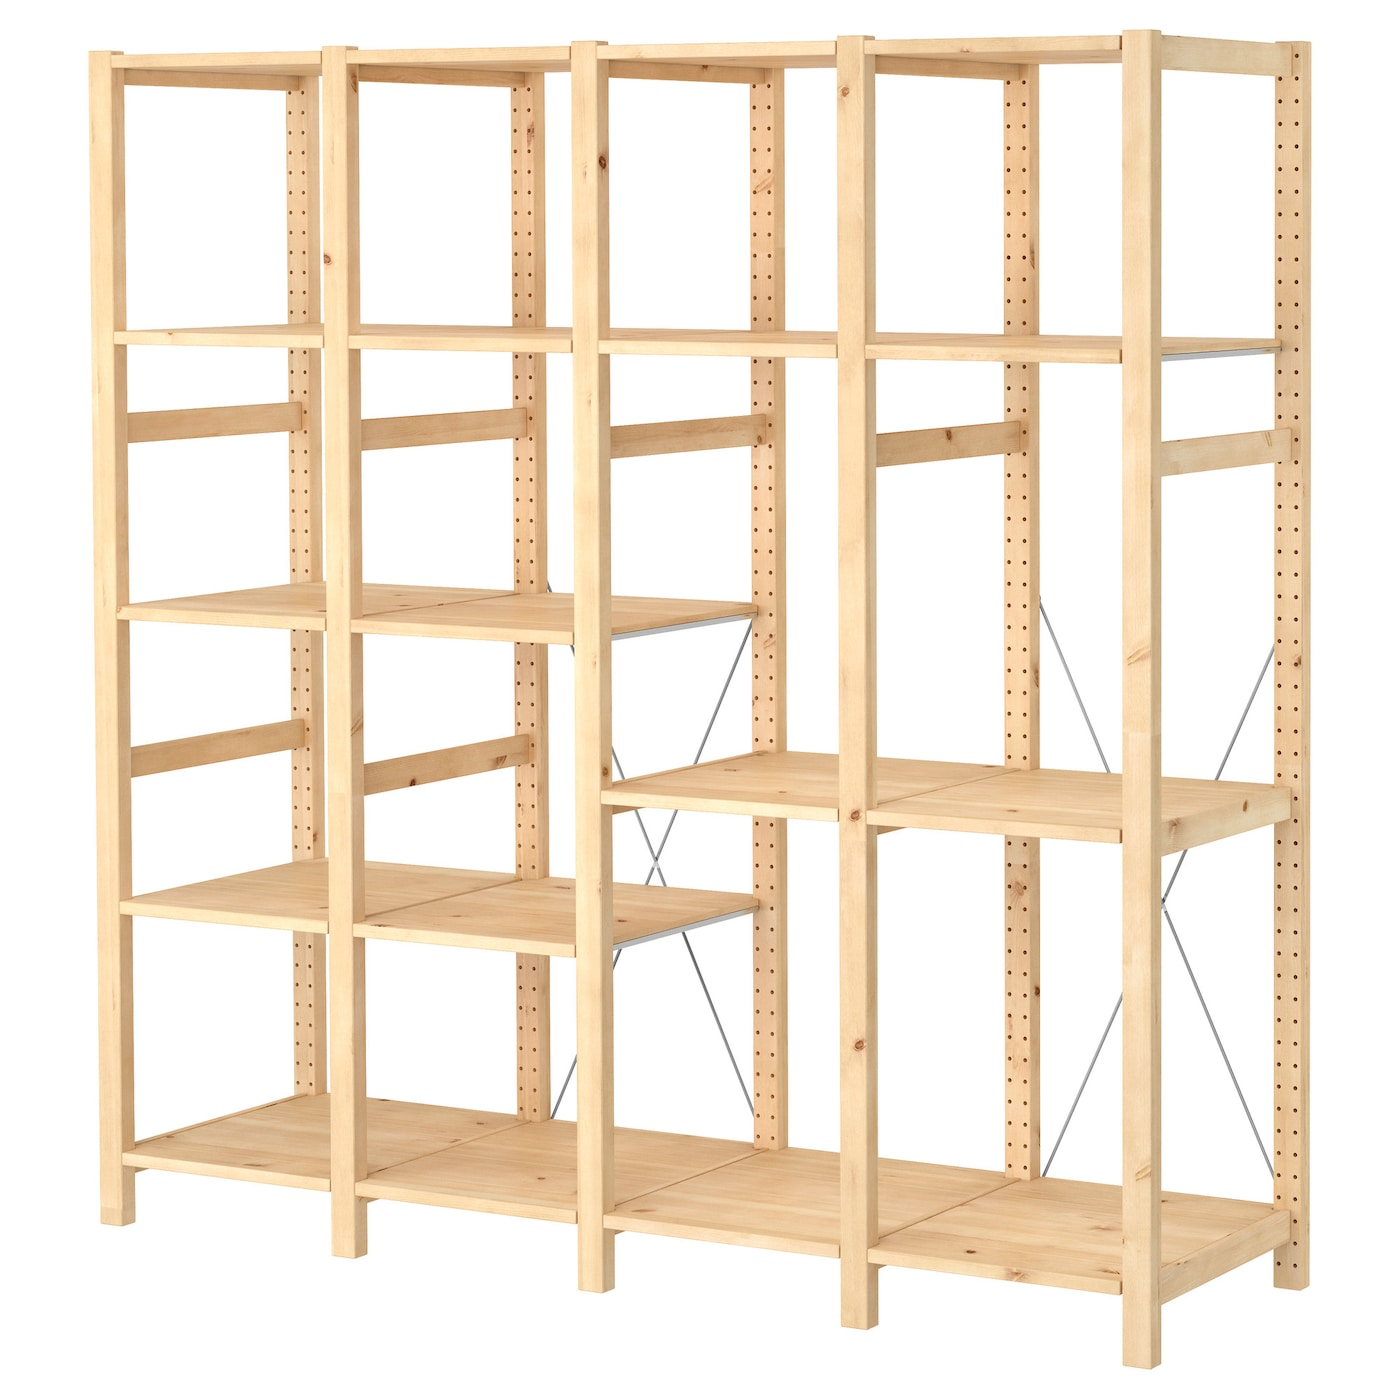 Ikea Ivar 4 Sections Shelves You Can Move And Adapt Ing To Suit Your